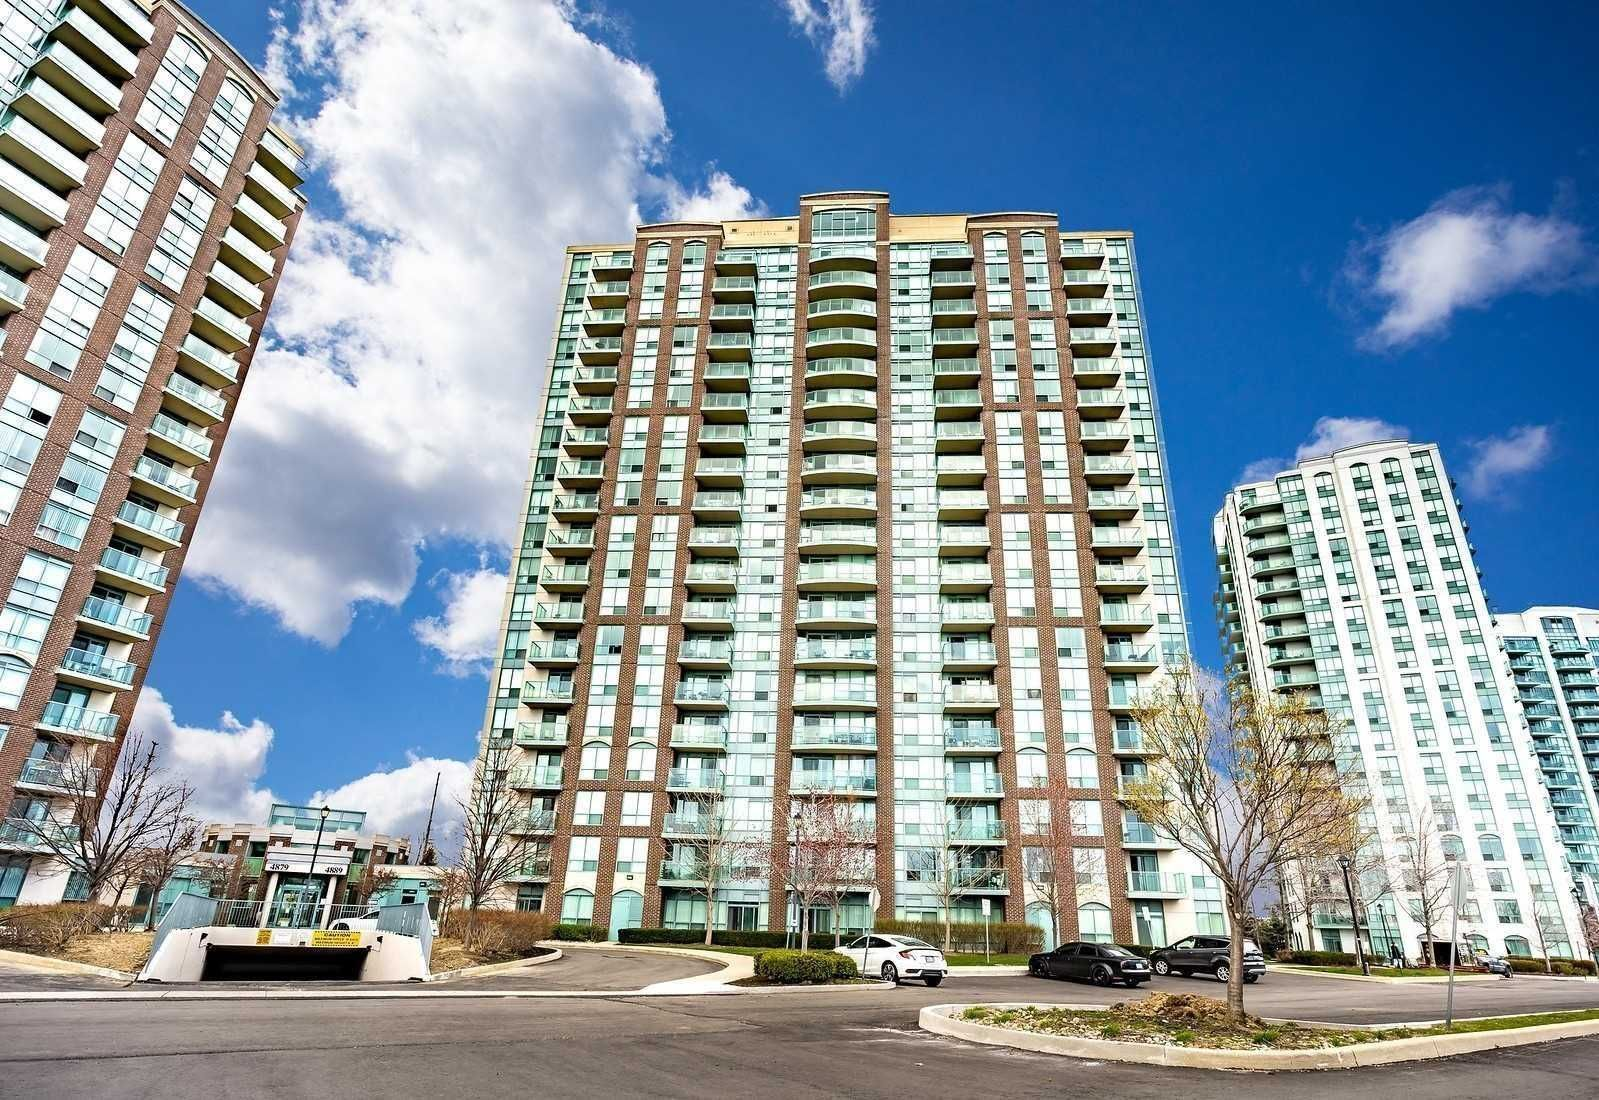 4889 Kimbermount Ave. This condo at Papillon Place II Condos is located in Central Erin Mills, Mississauga